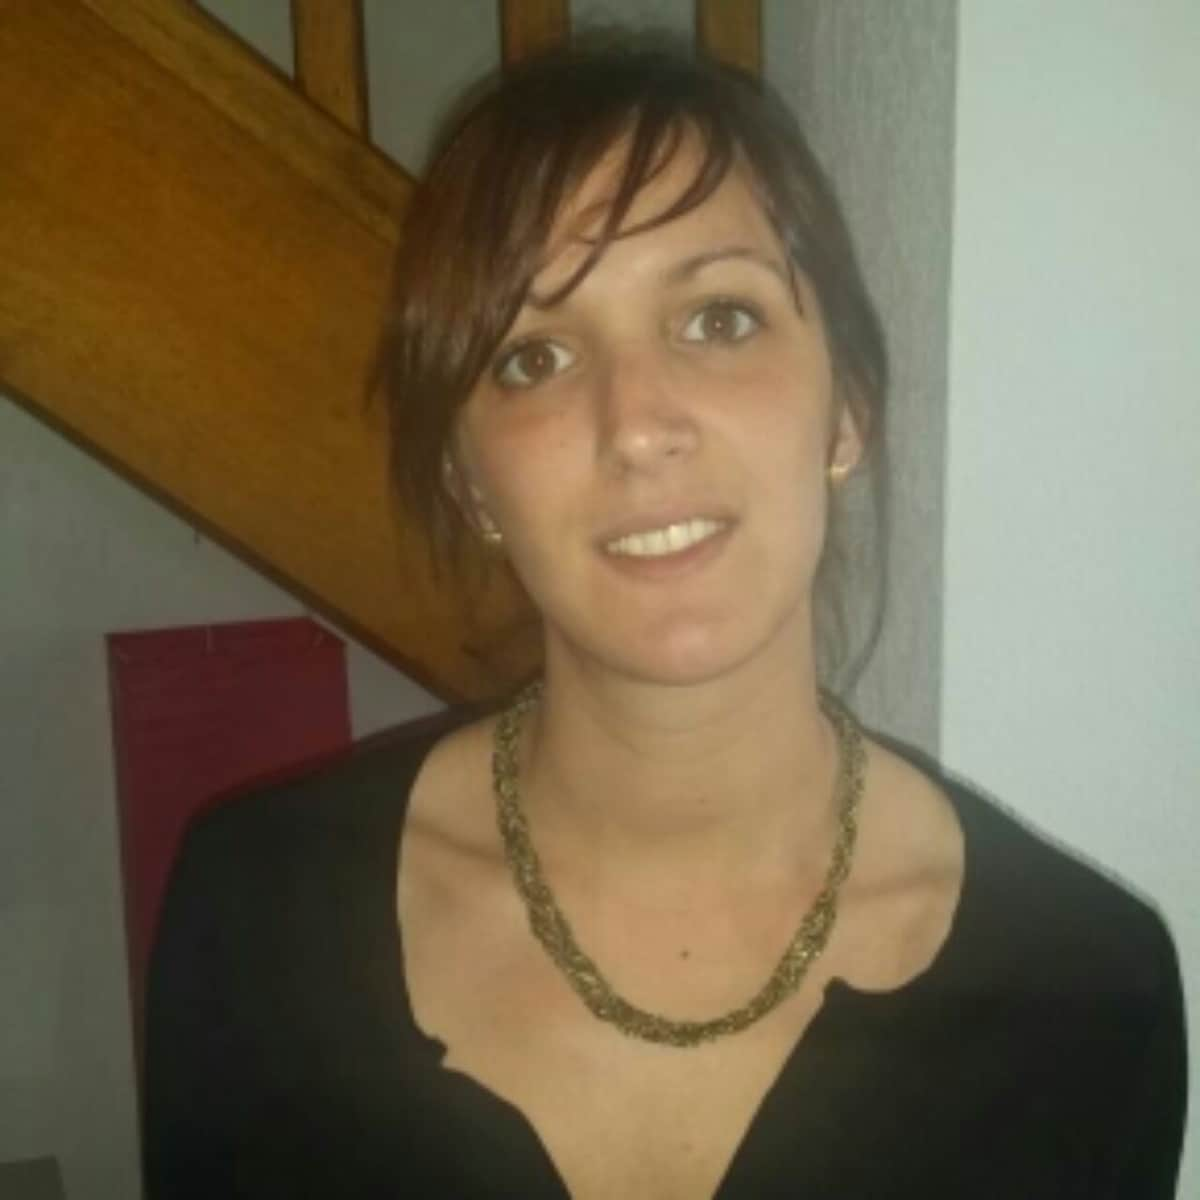 Amandine From Vic-la-Gardiole, France